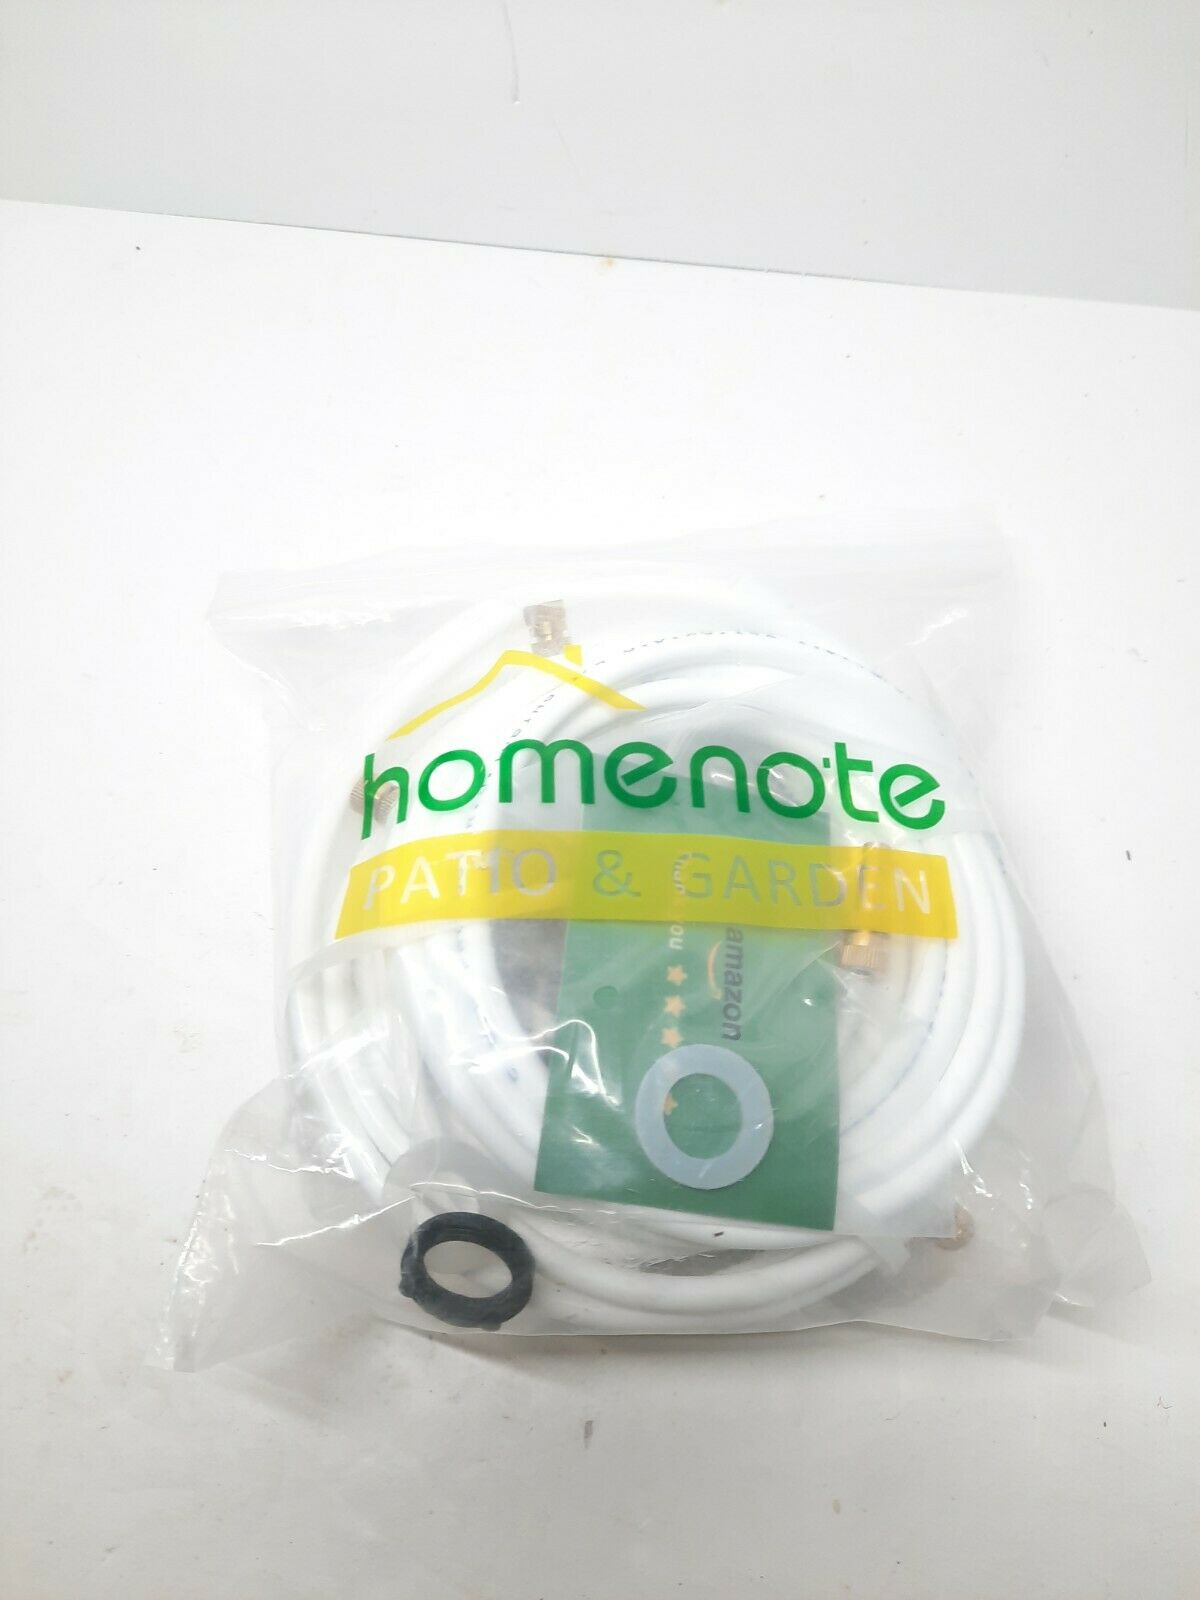 Homenote Misting Cooling System 26Ft (8M) White New Open Box Free Shipping